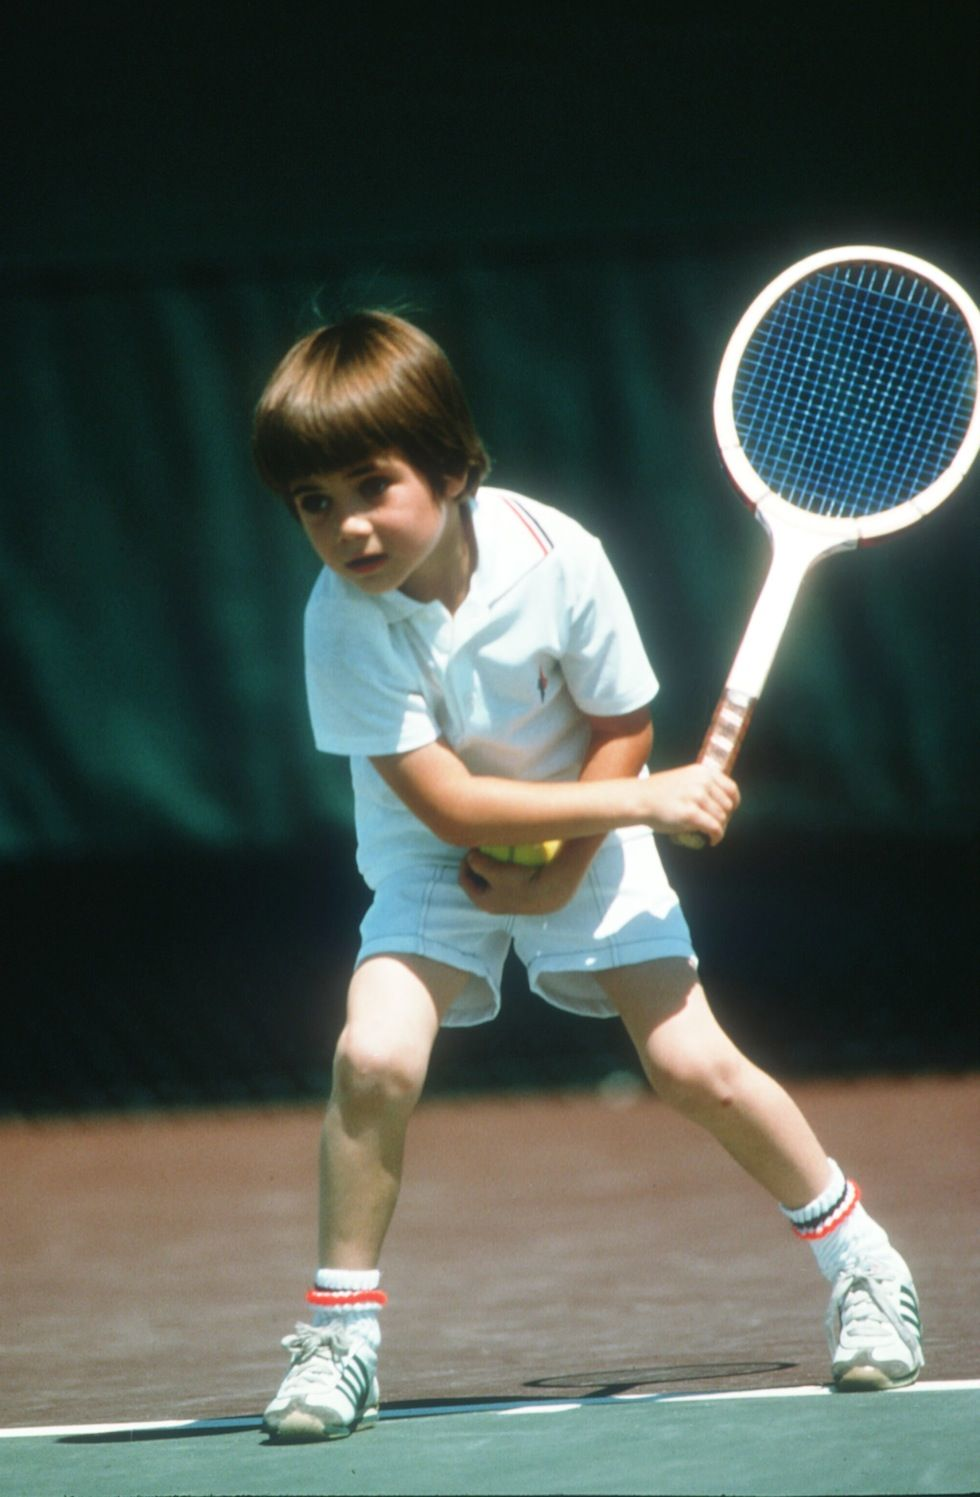 Seven Year Old Andre Agassi Plays Tennis April 1977 In Las